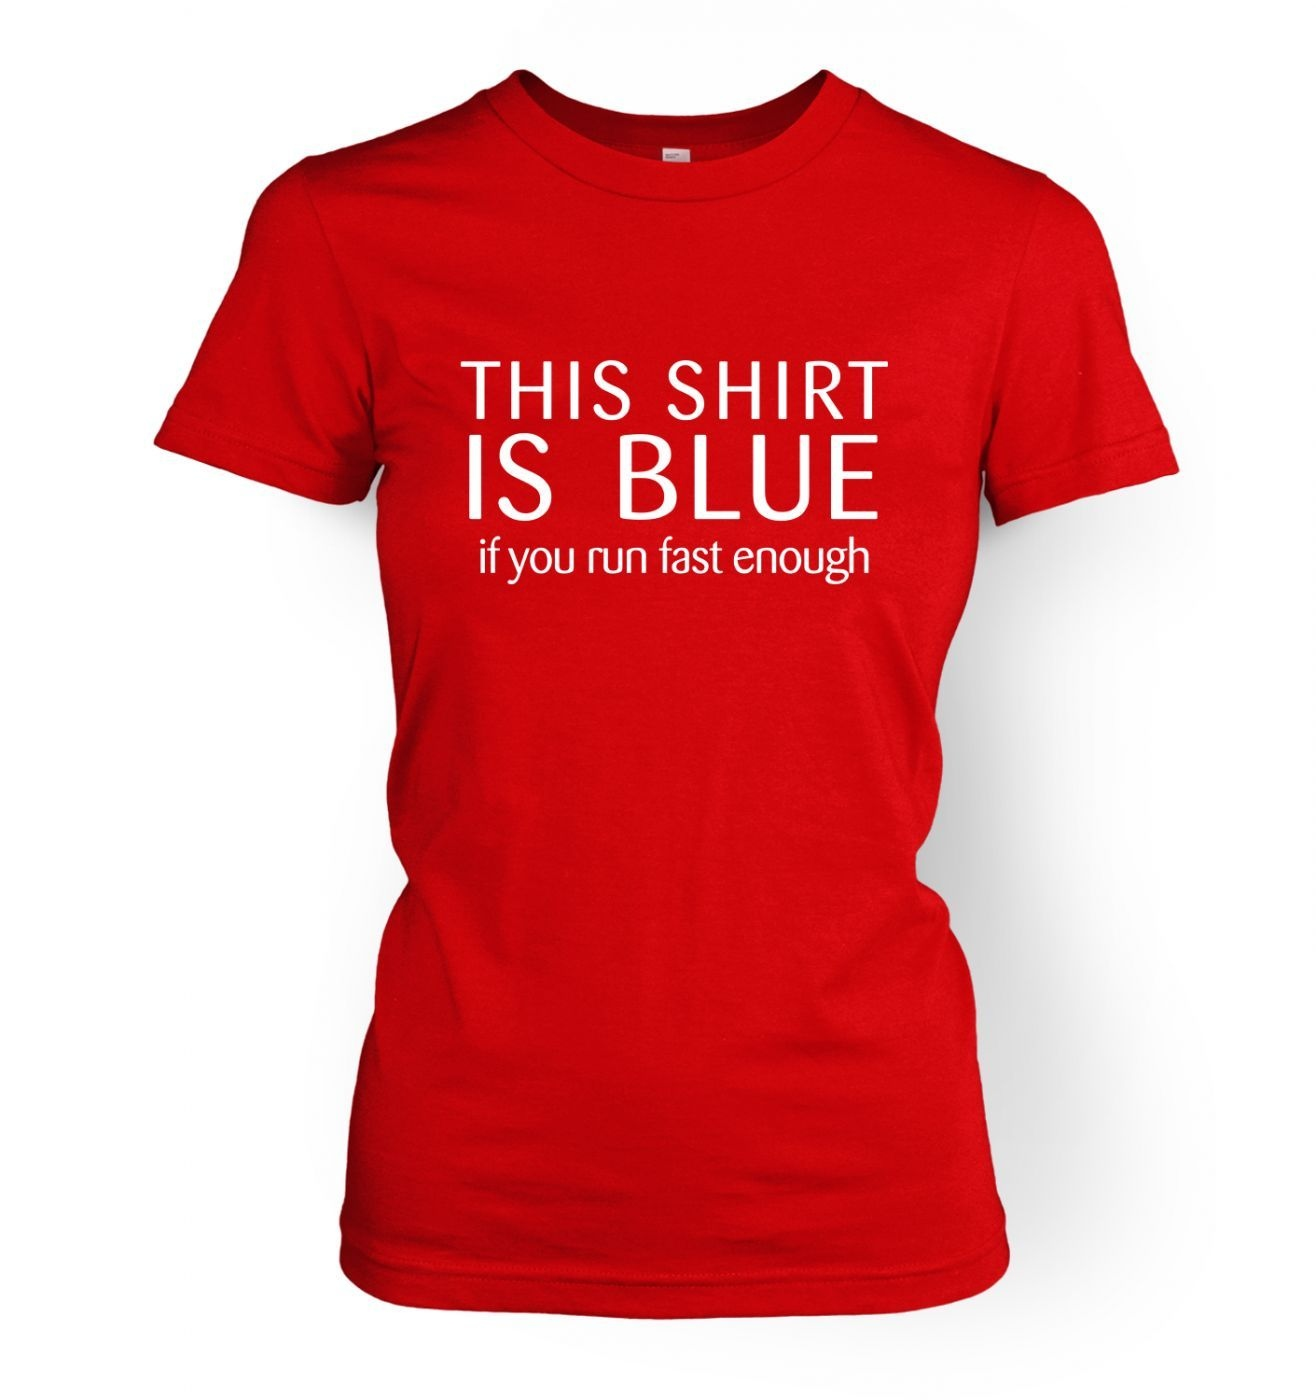 This Shirt Is Blue women's fitted t-shirt